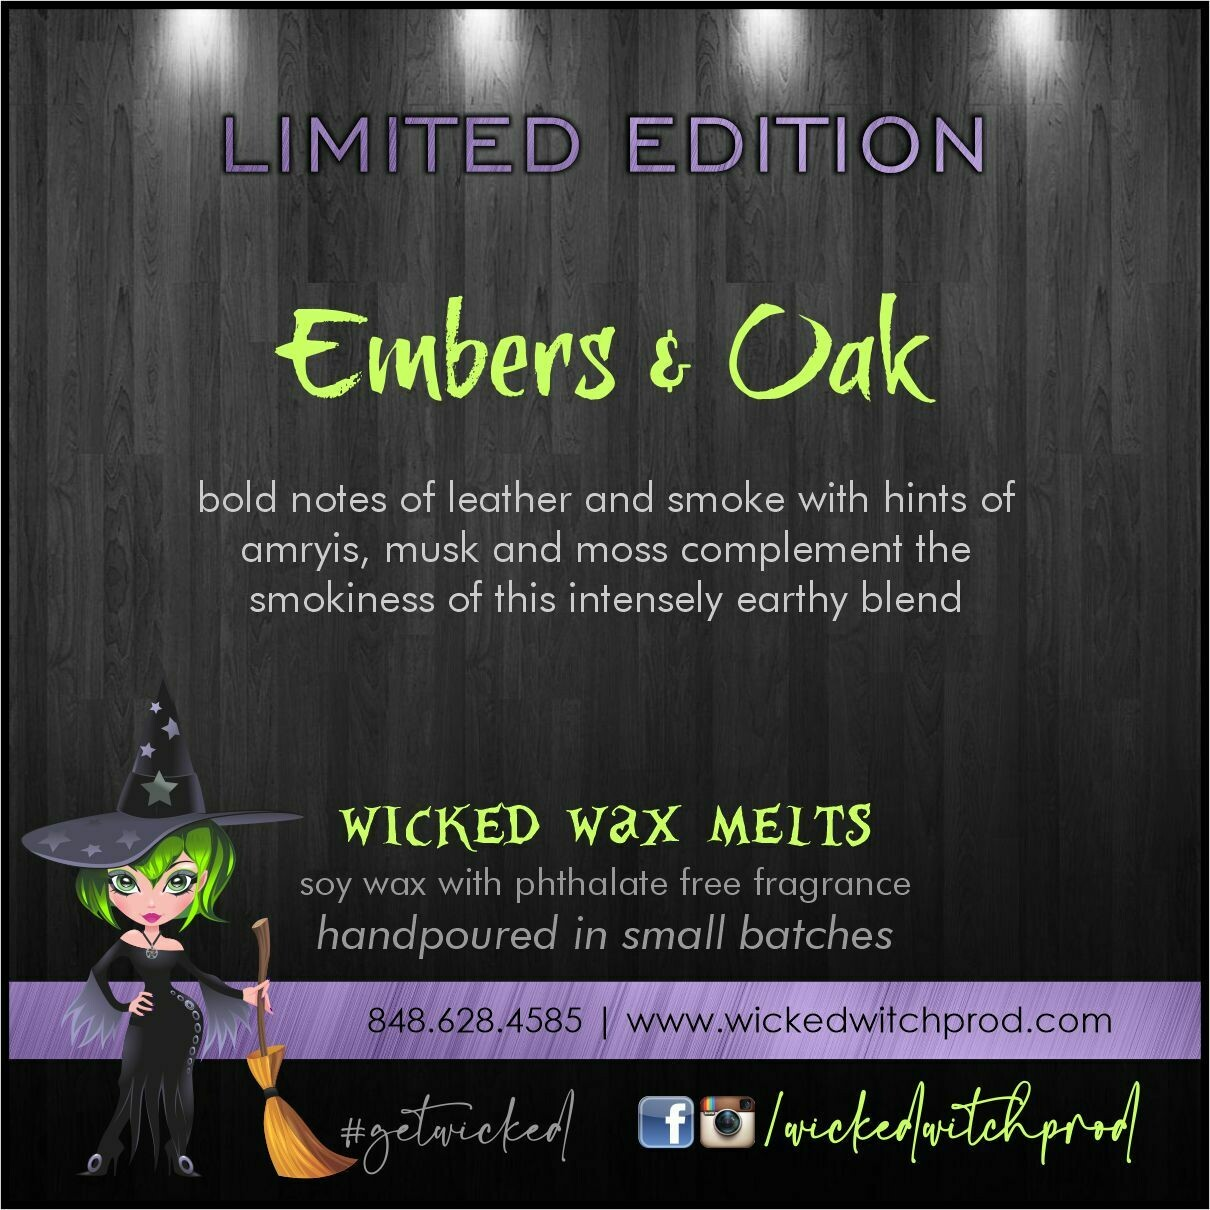 Embers & Oak Wicked Wax Melts